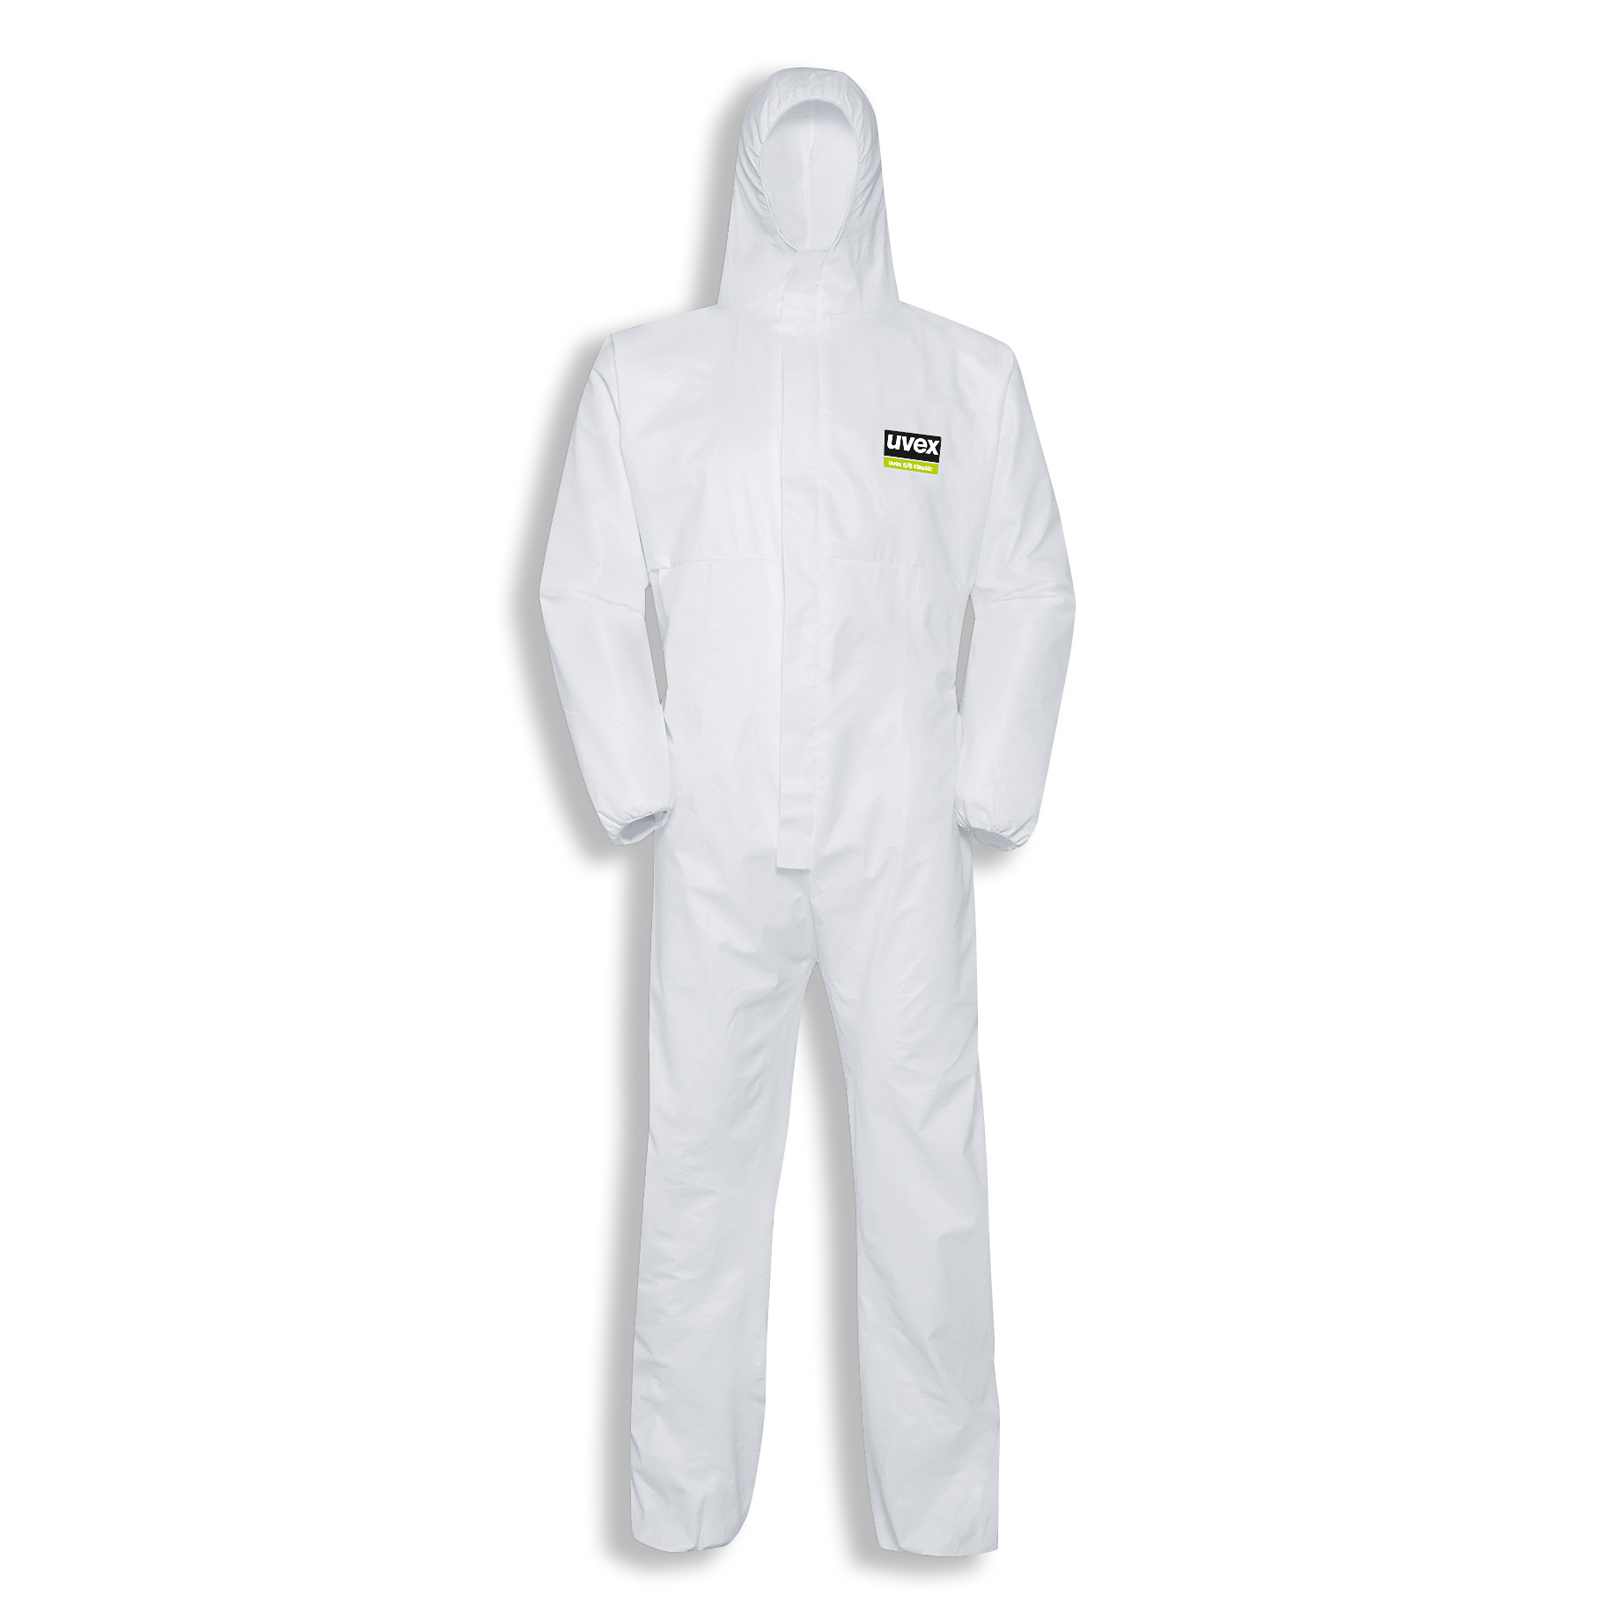 Uvex 5 6 Classic Chemical Protection Suit Protective